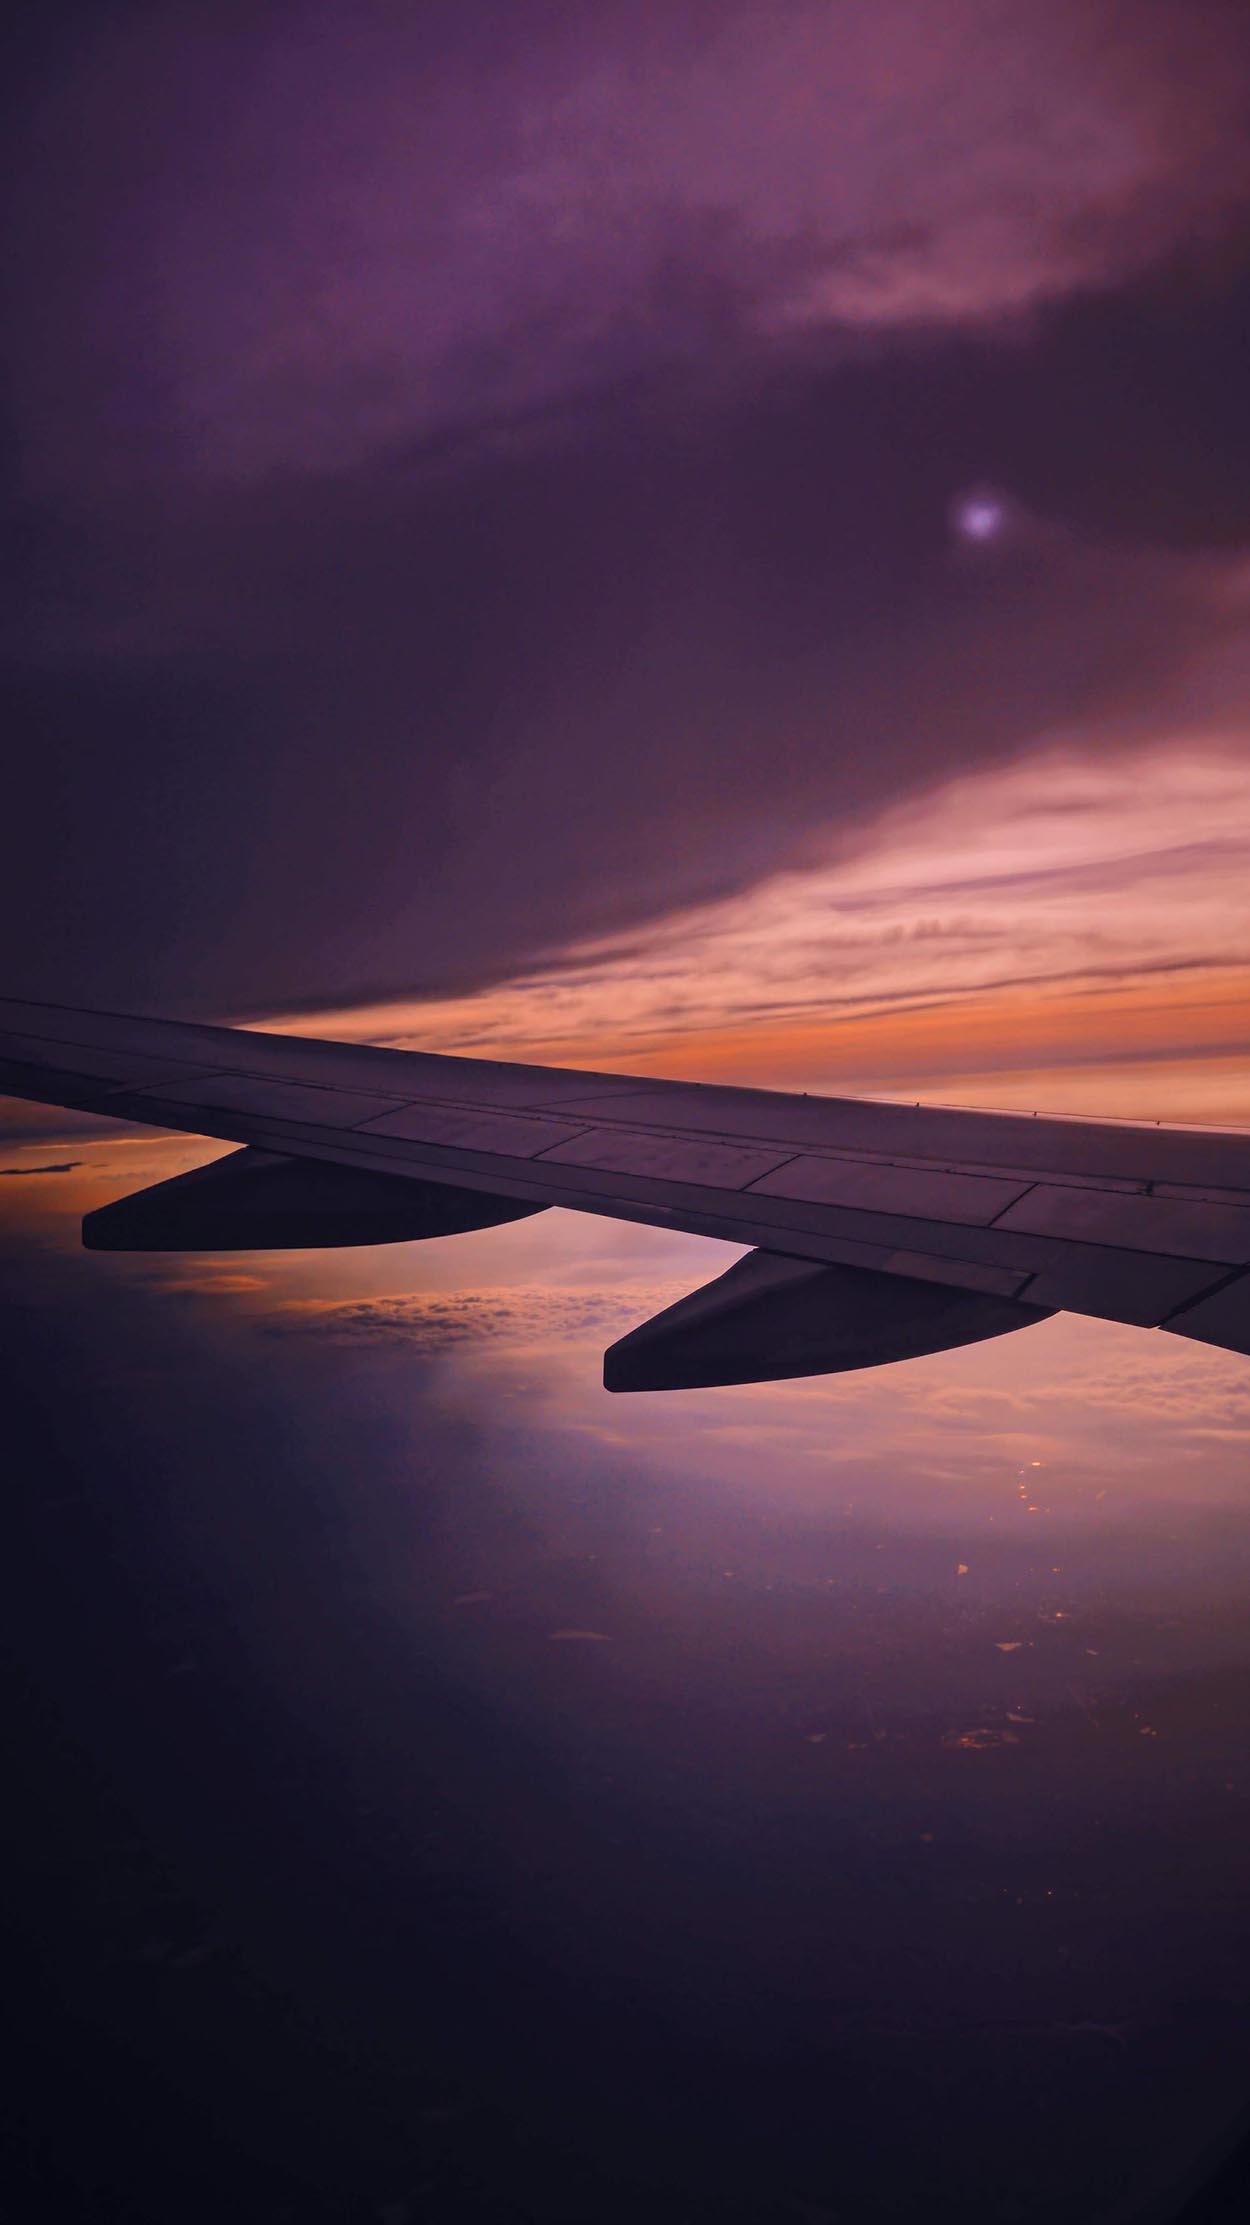 Wing of a plane from the window, Mexico